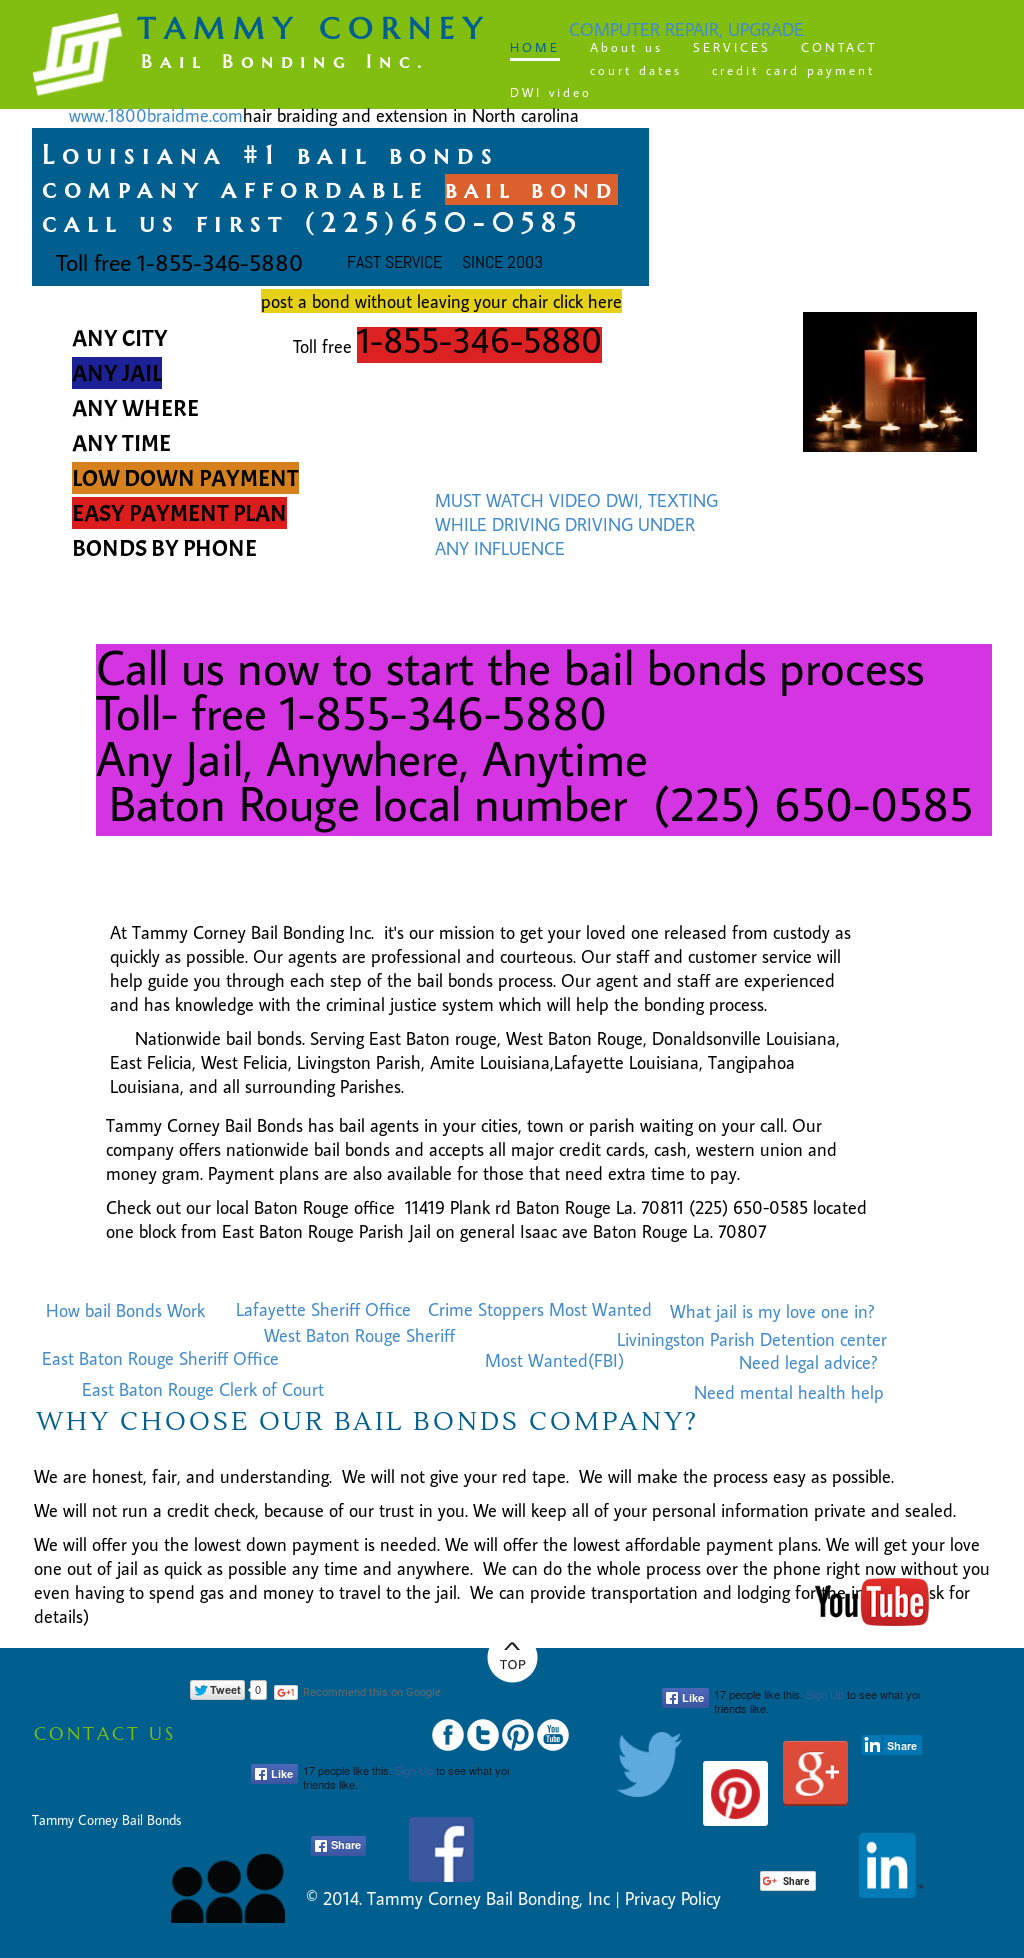 Tammy Corney Bail Bonding Competitors, Revenue and Employees